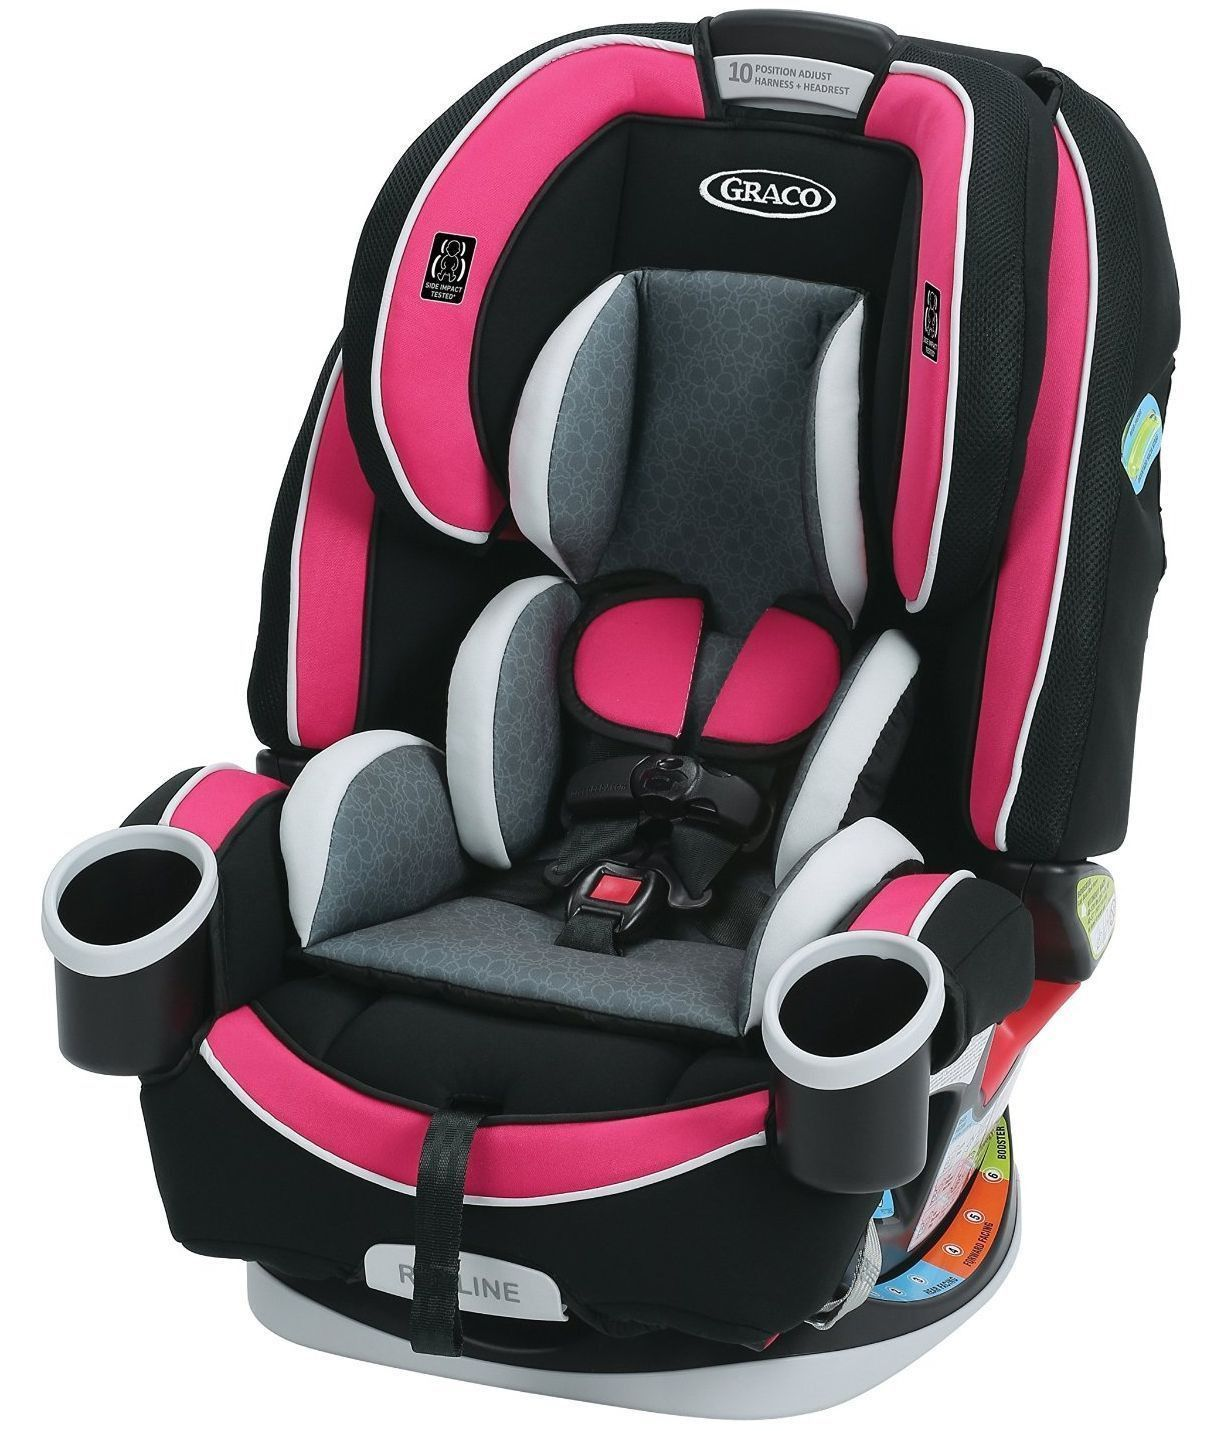 Graco Baby 4ever All In 1 Convertible Car Seat Infant Child Booster Azalea